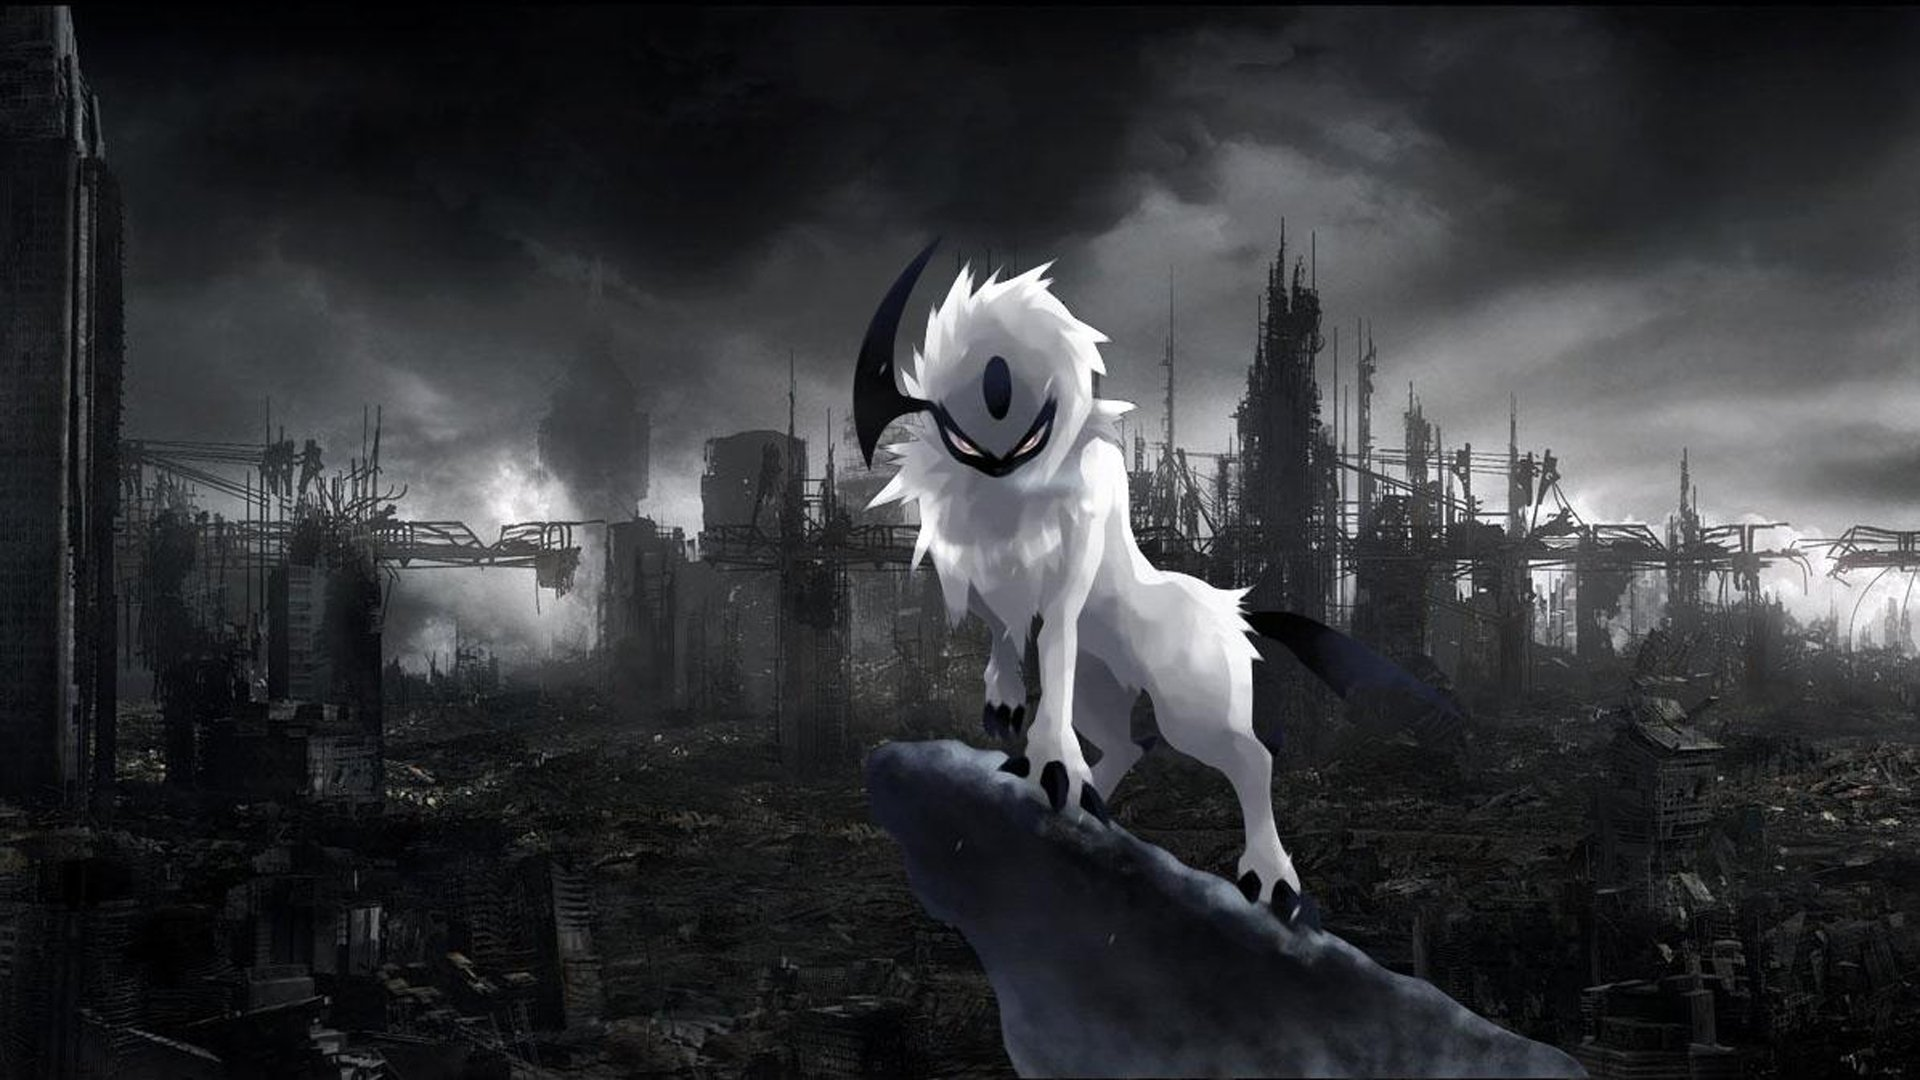 Anime - Pokémon  Absol (Pokémon) Dark Pokémon Wallpaper